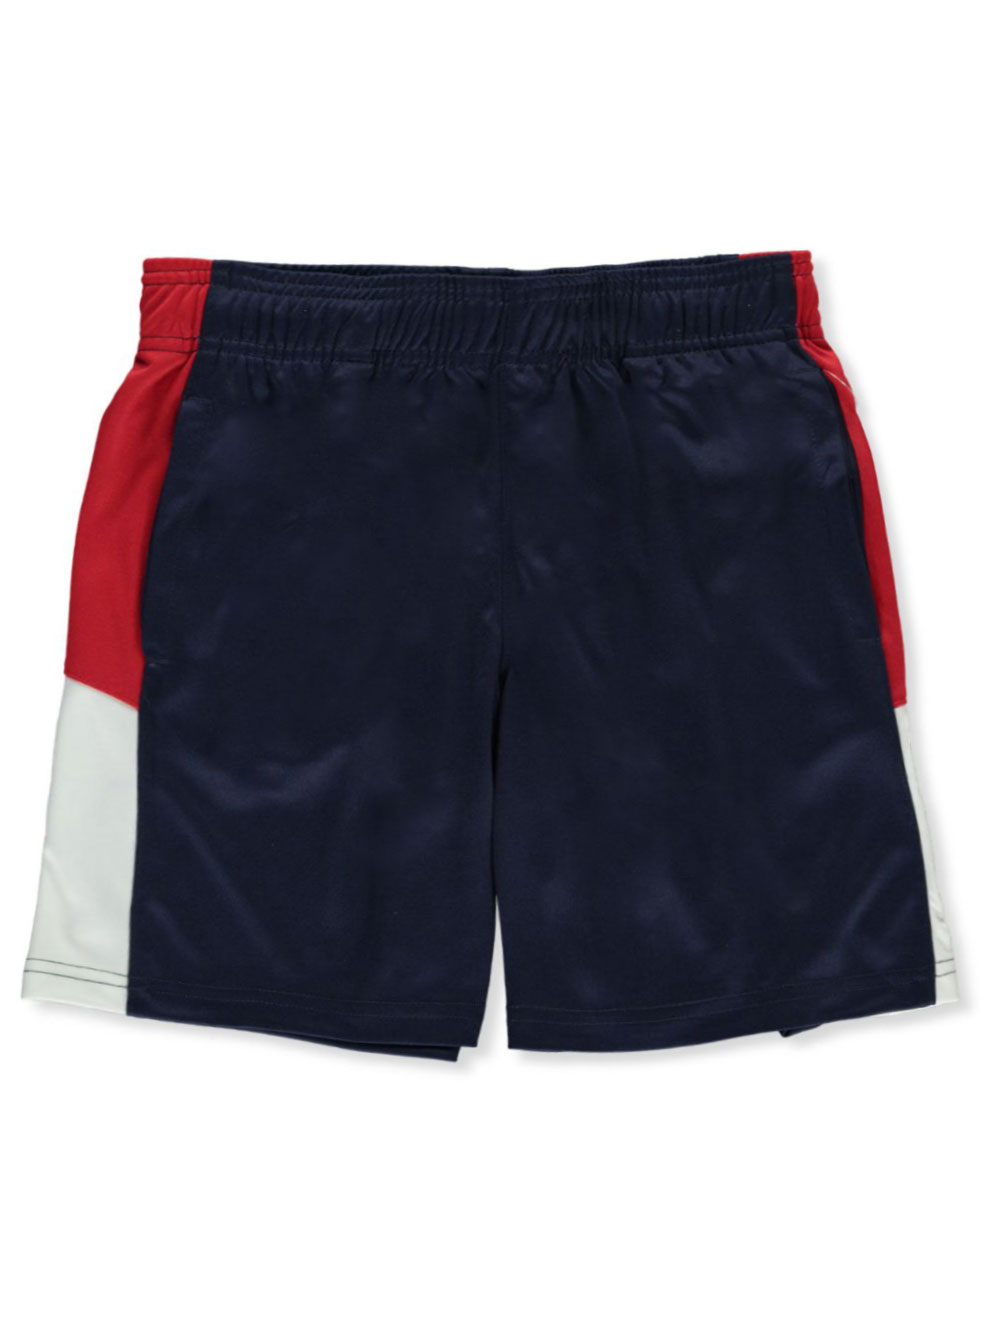 Size 16-18 Shorts for Boys